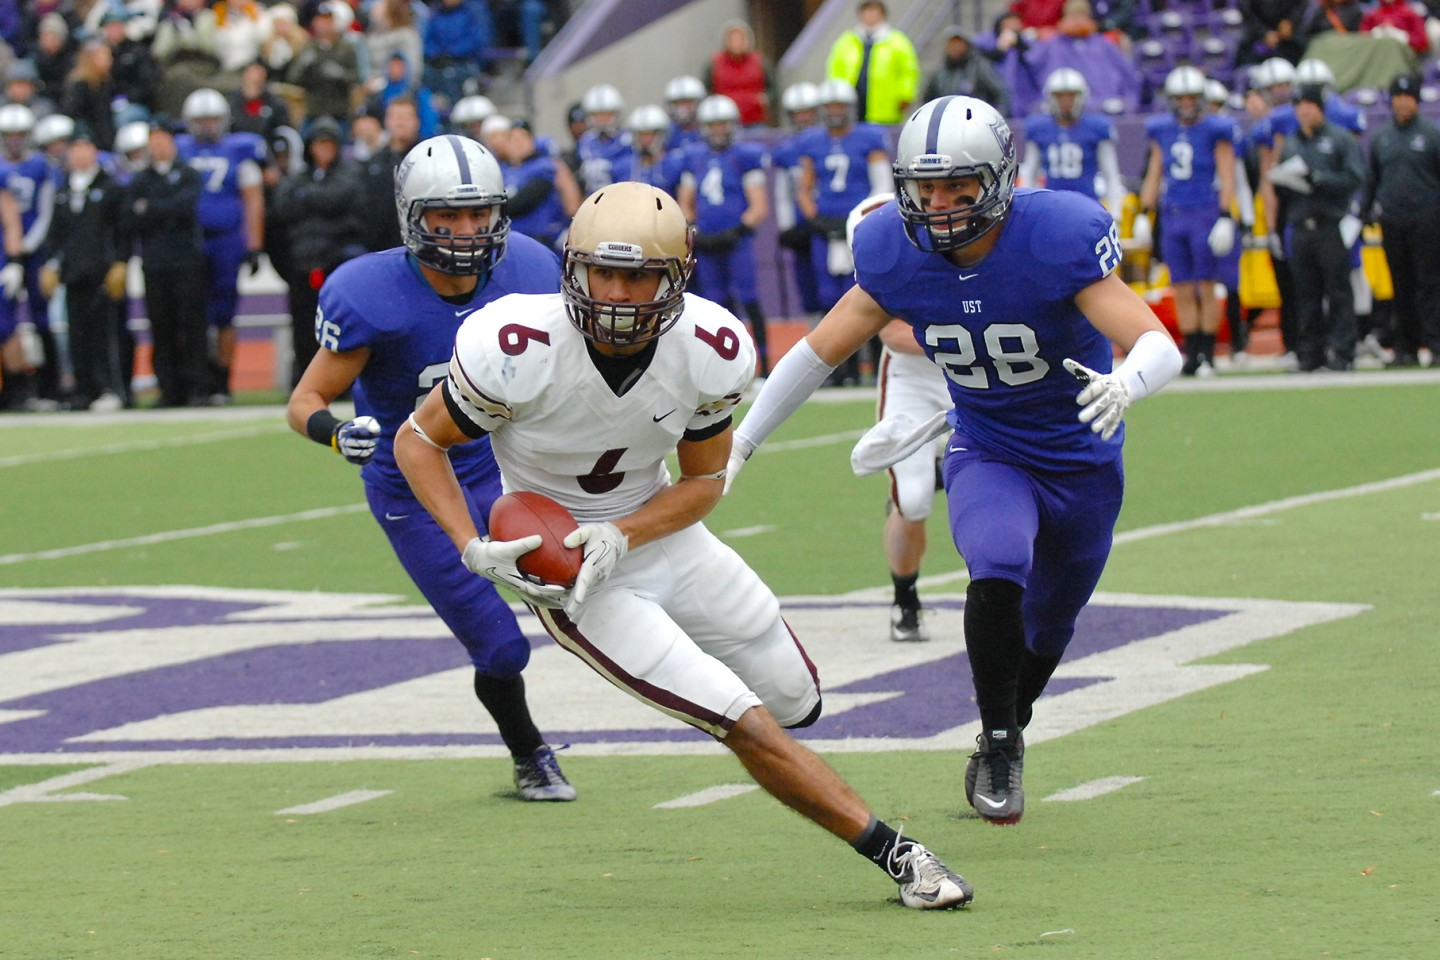 Zylstra in Cobber Football game